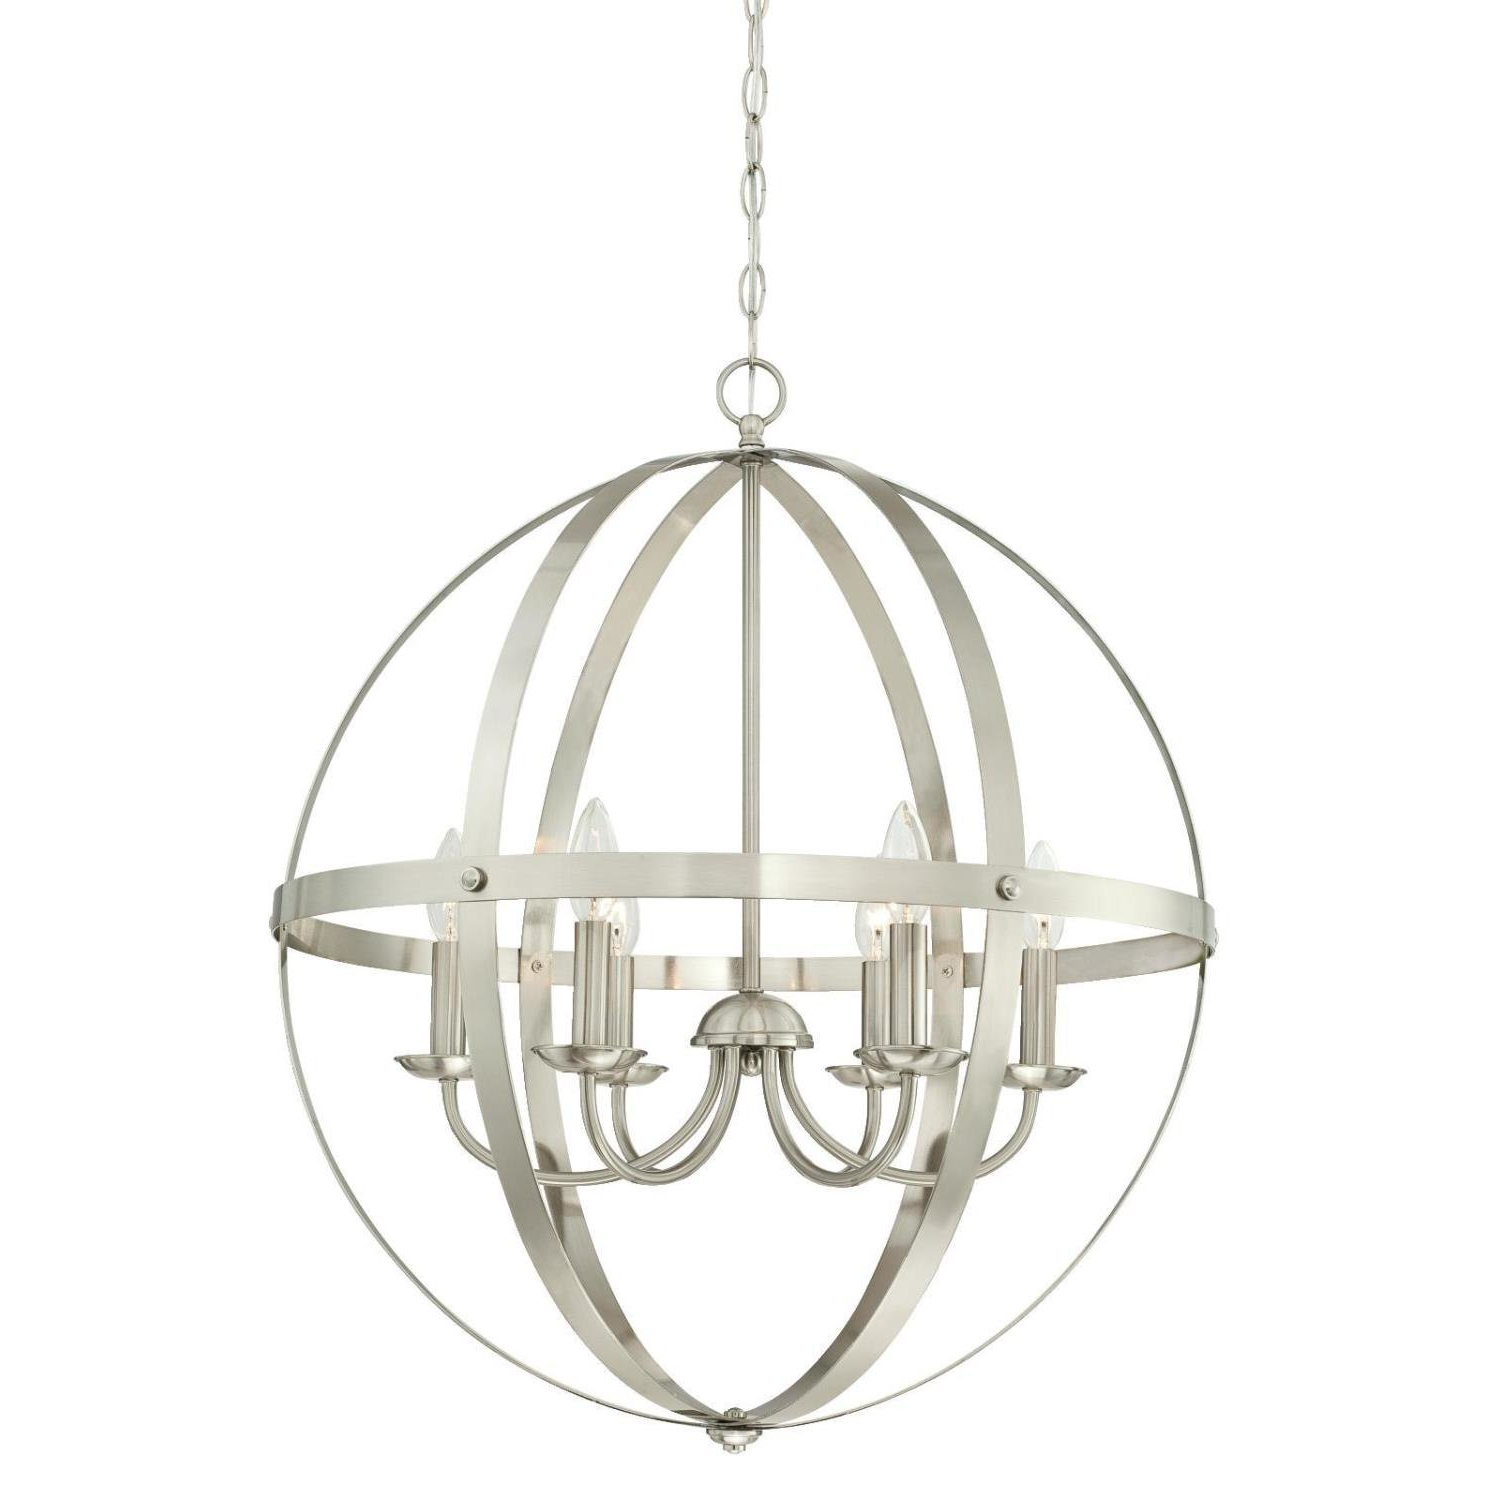 Joon 6 Light Globe Chandelier With Regard To Preferred Joon 6 Light Globe Chandeliers (Gallery 2 of 20)